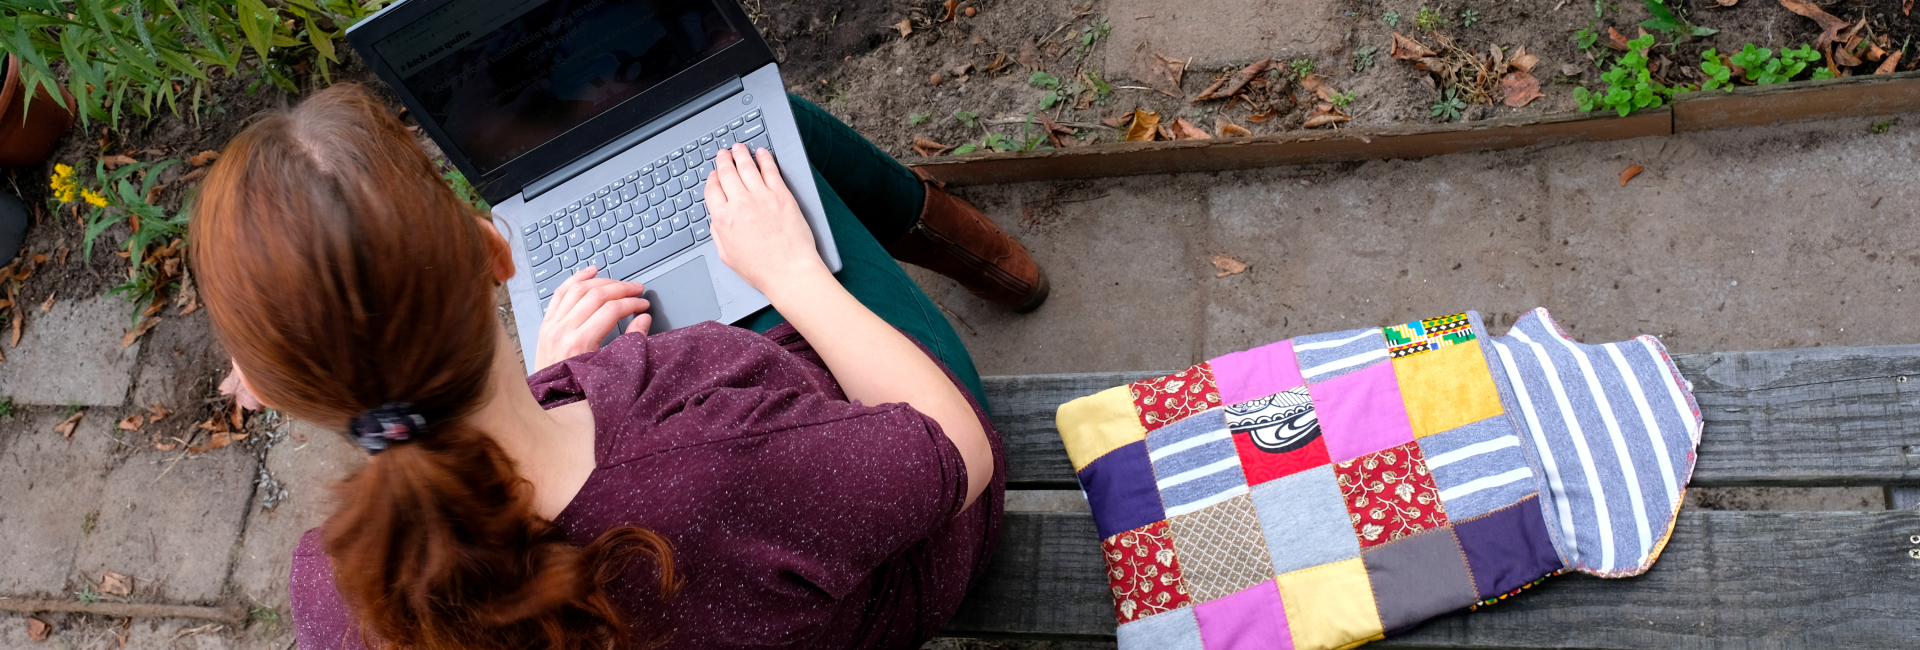 Rianne with her laptop and quilted sleeve ready to answer questions